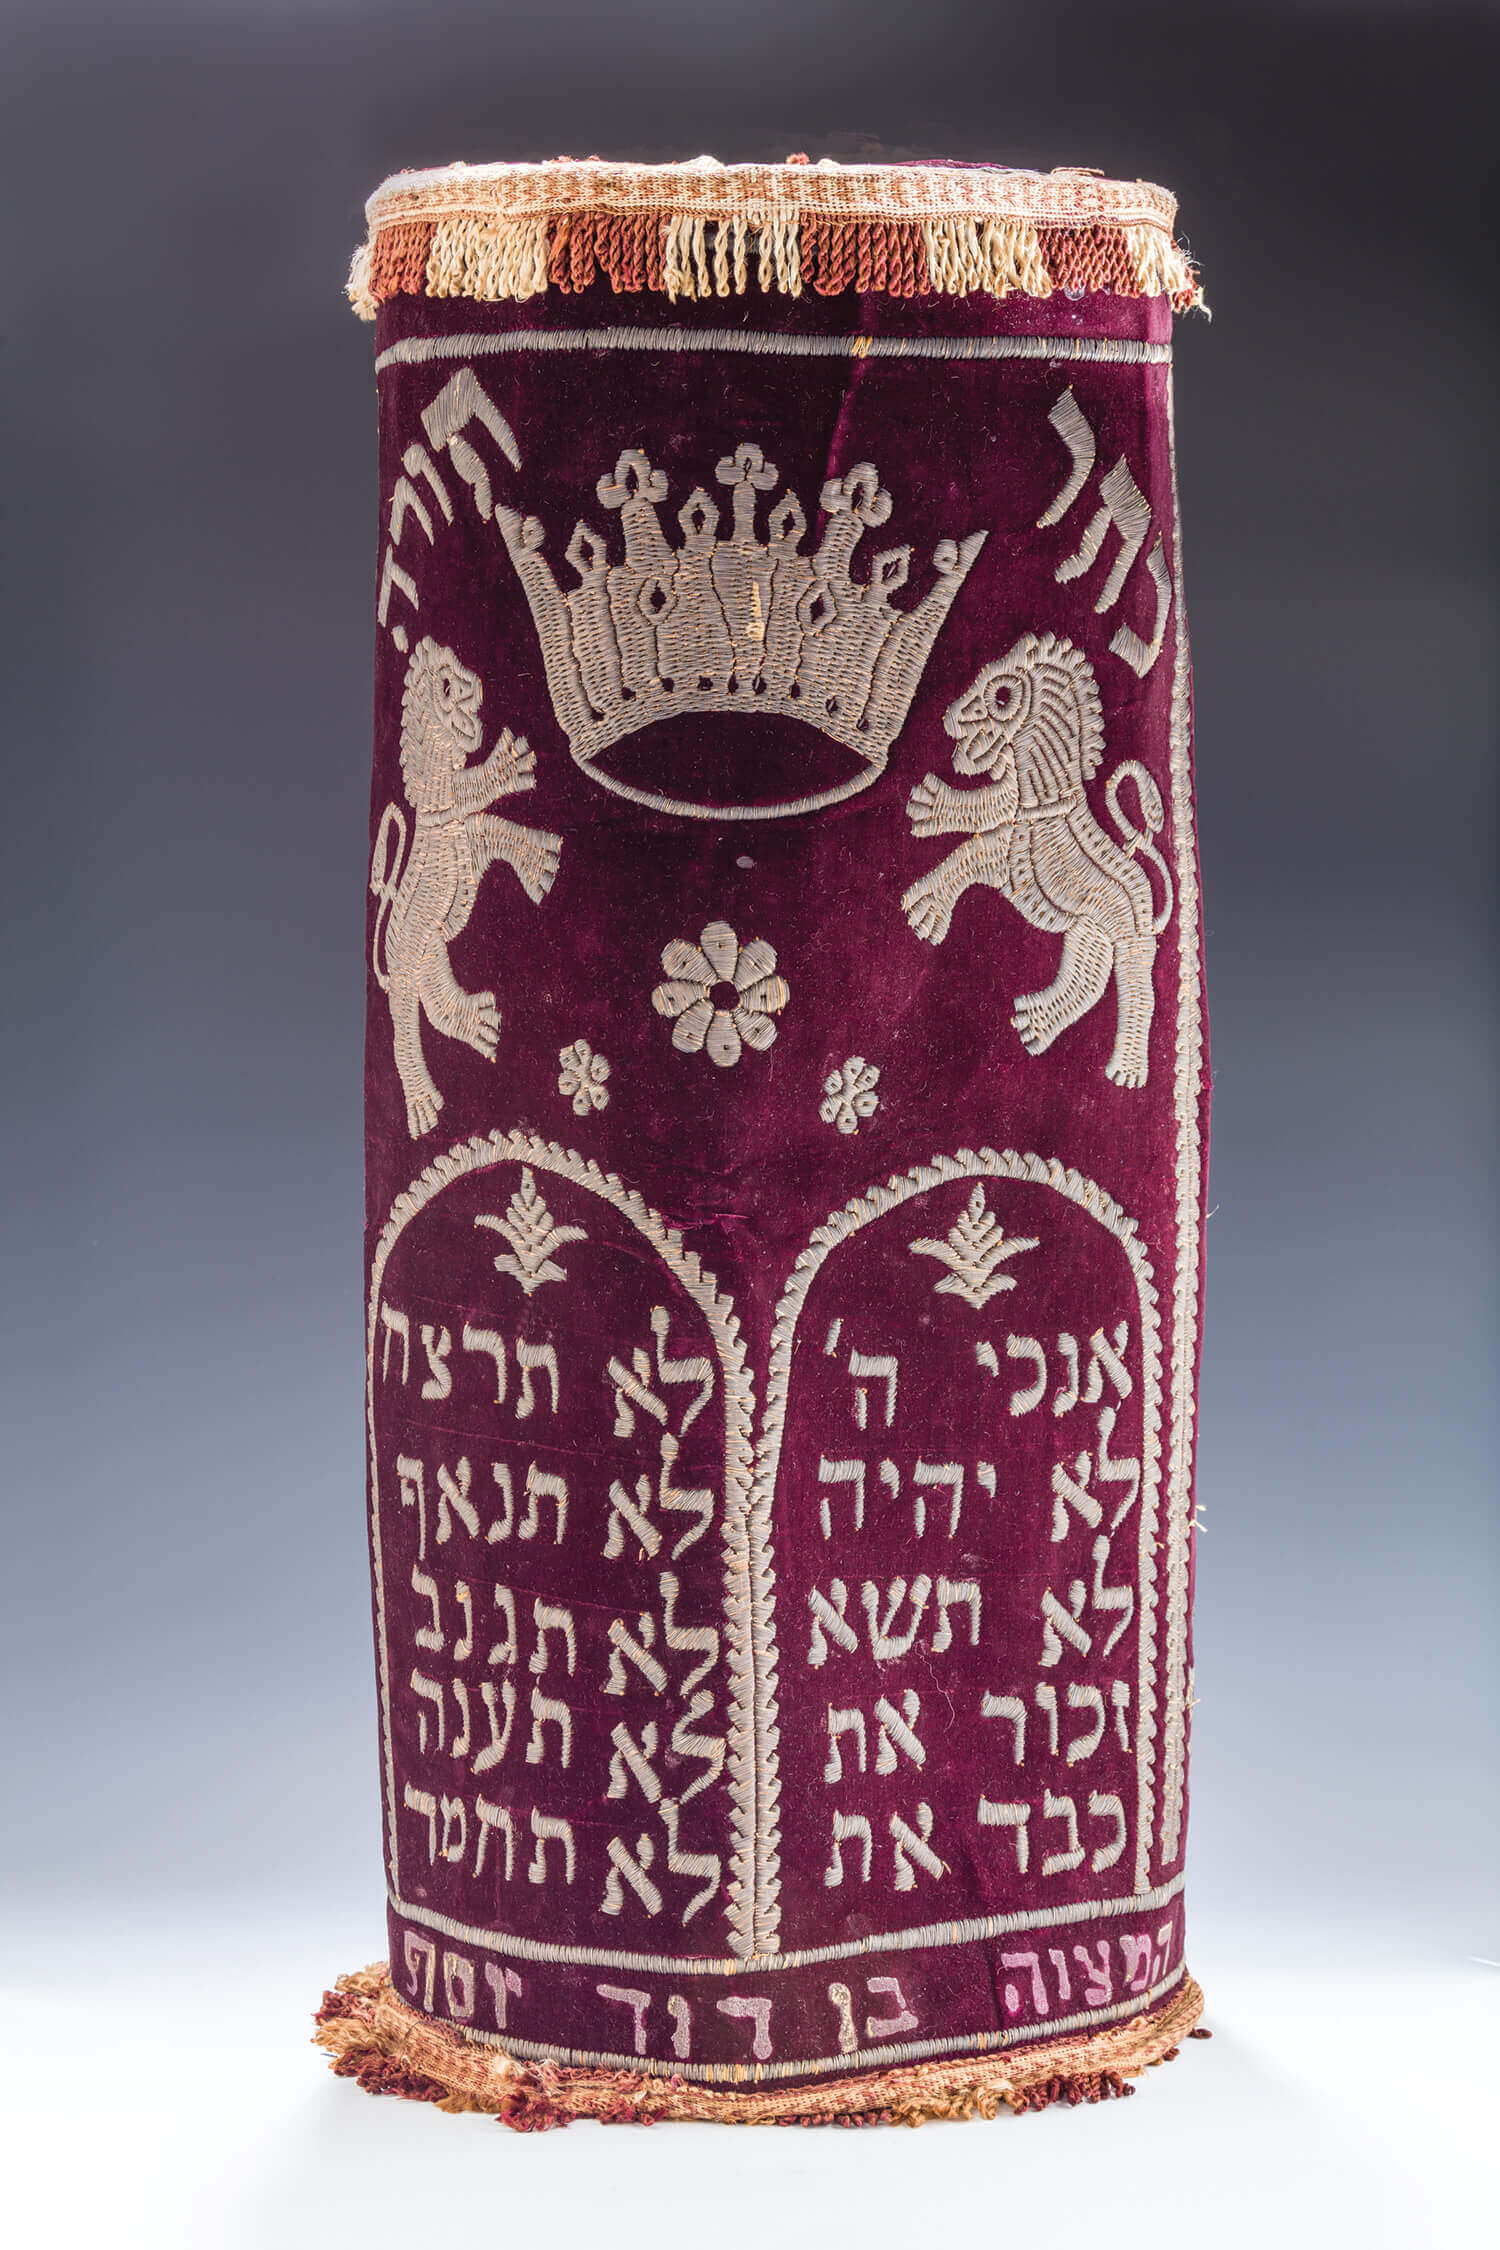 022. A VELVET AND SILVER WIRE TORAH TIK COVER